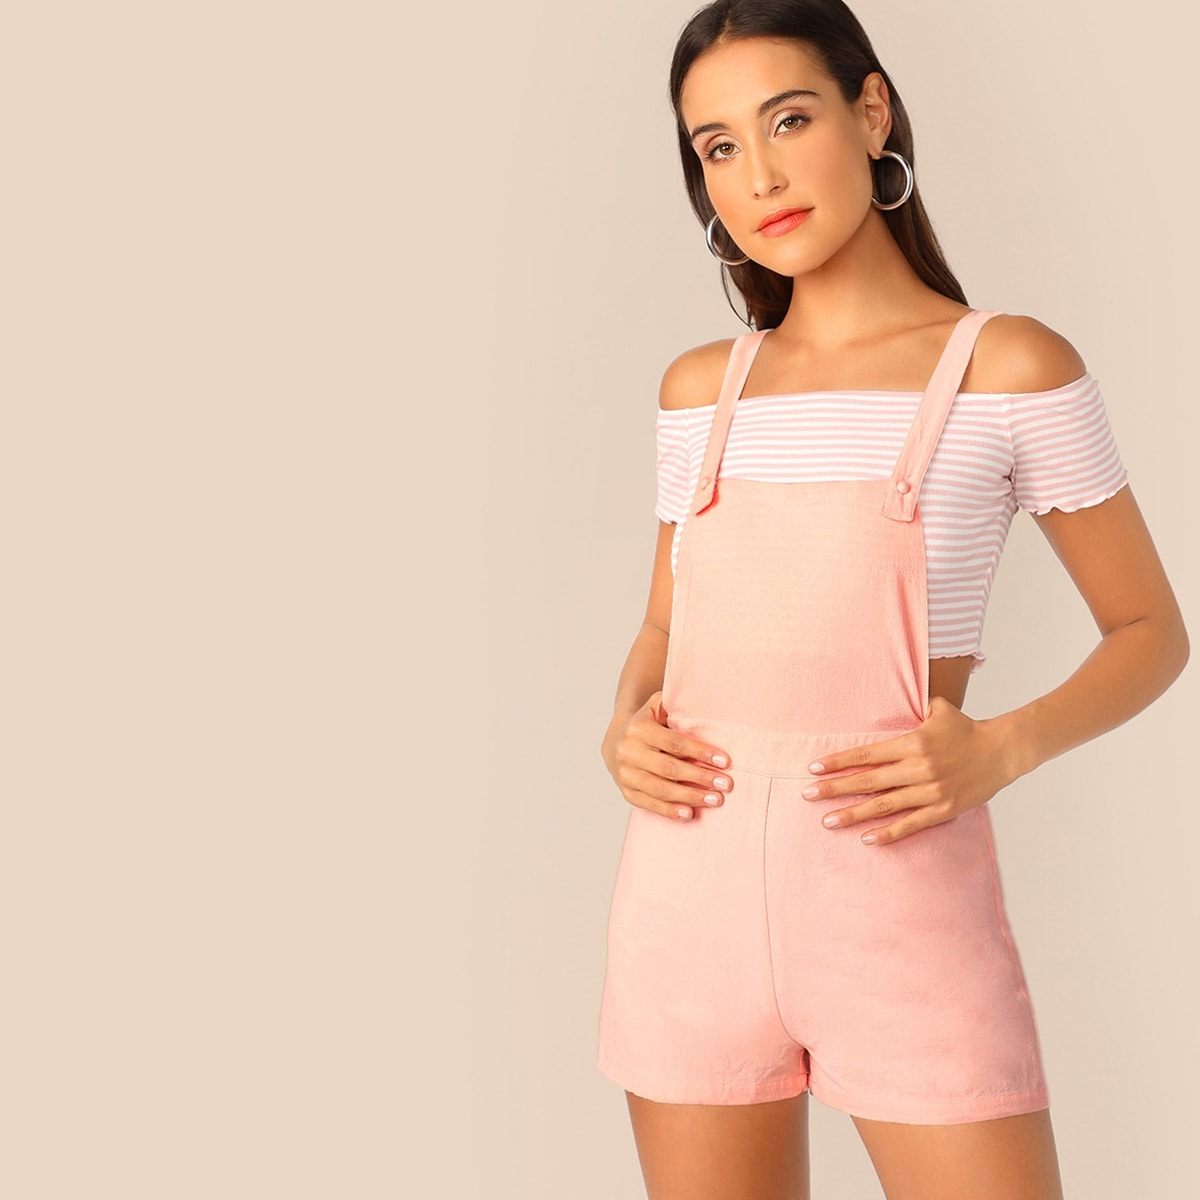 Lettuce Trim Striped Bardot Top & Overall Shorts Set in Pink by ROMWE on GOOFASH